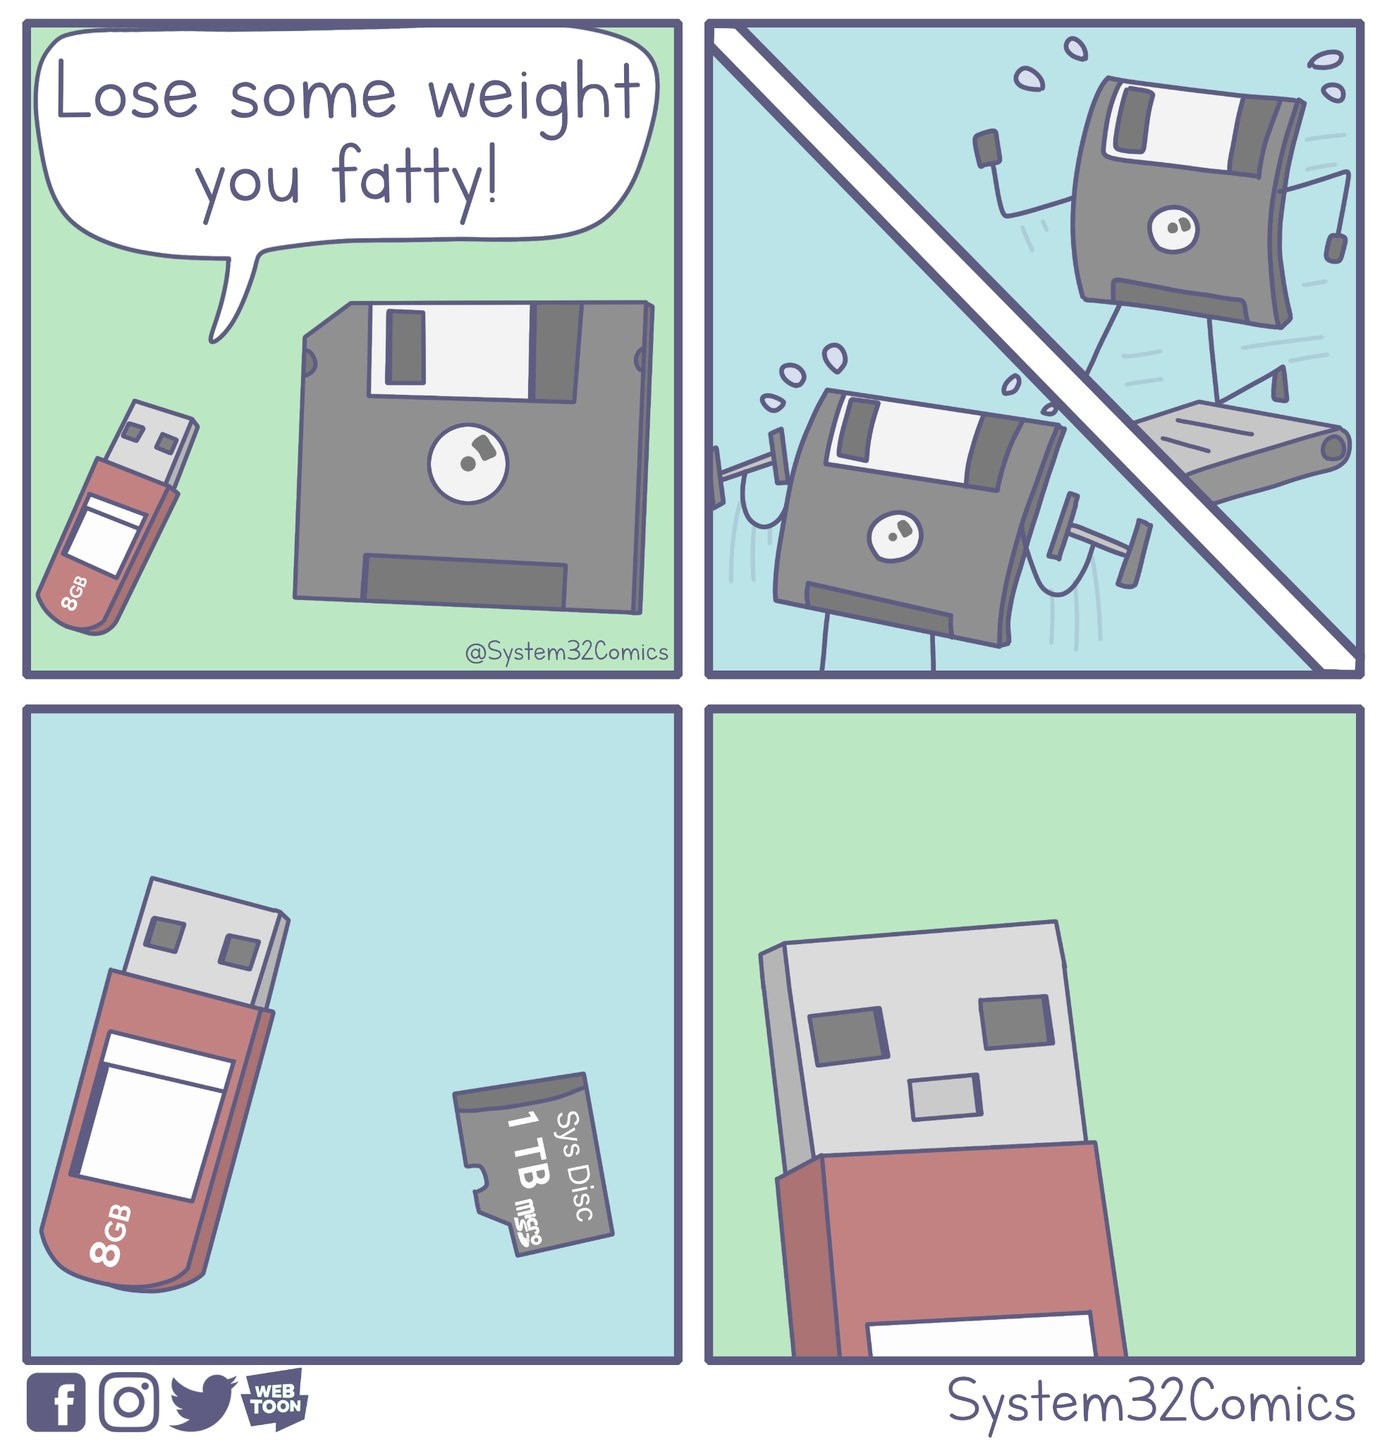 Weight Loss - meme